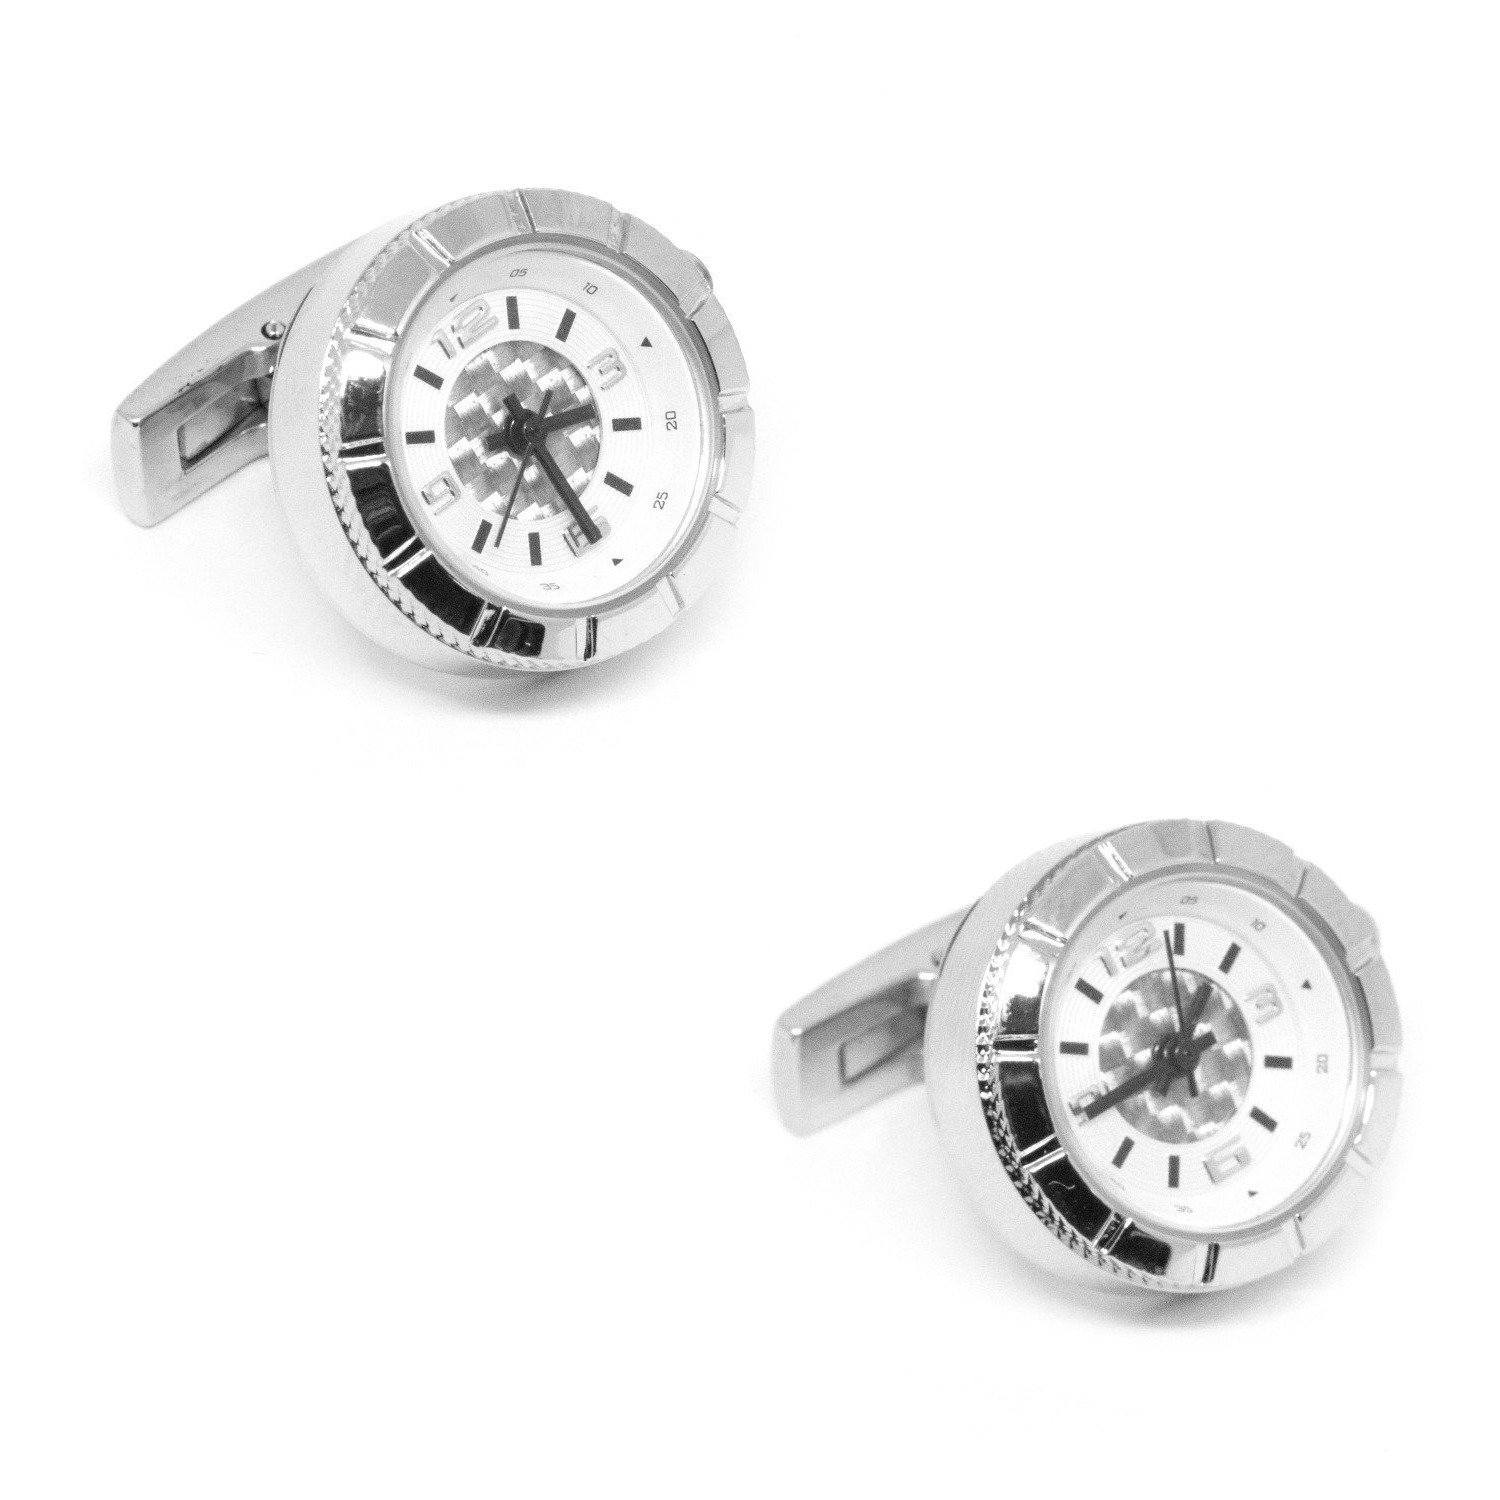 Round Silver Carbon Fibre Working Watch Clock Cufflinks, Novelty Cufflinks, Cuffed.com.au, CL5555, $59.00